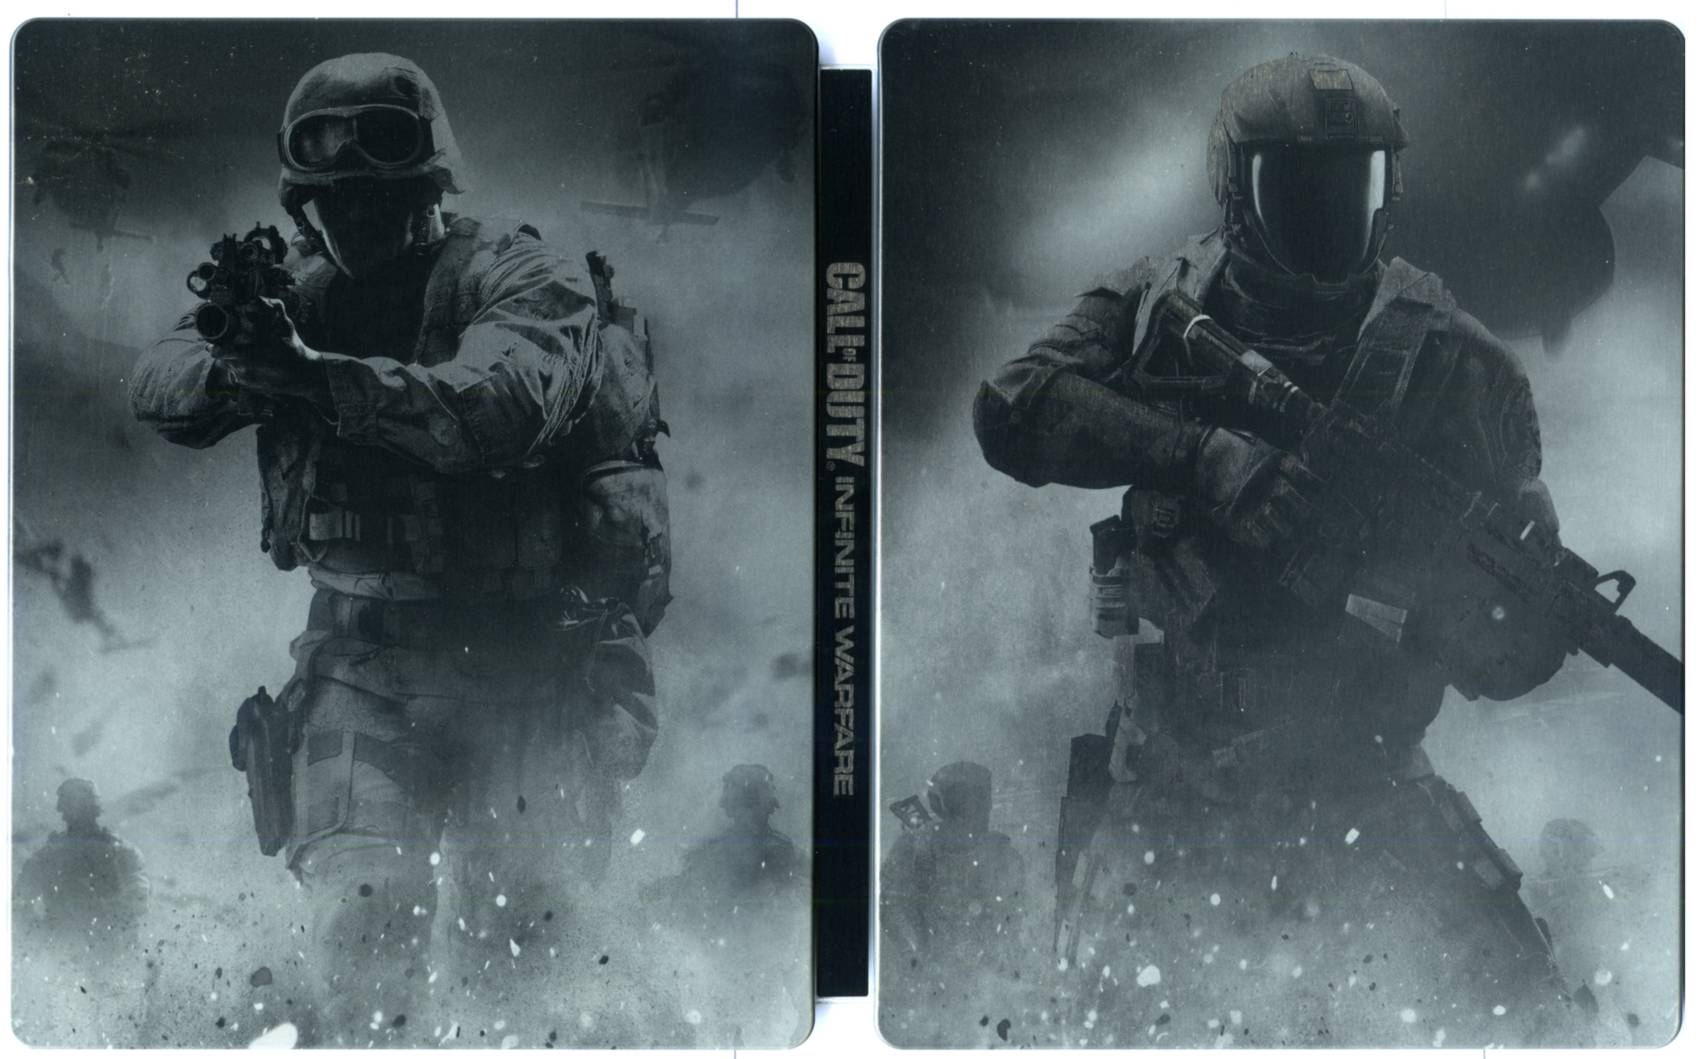 CALL OF DUTY: Infinite Warfare + Modern Warfare Remastered (LEGACY EDITION) - PS